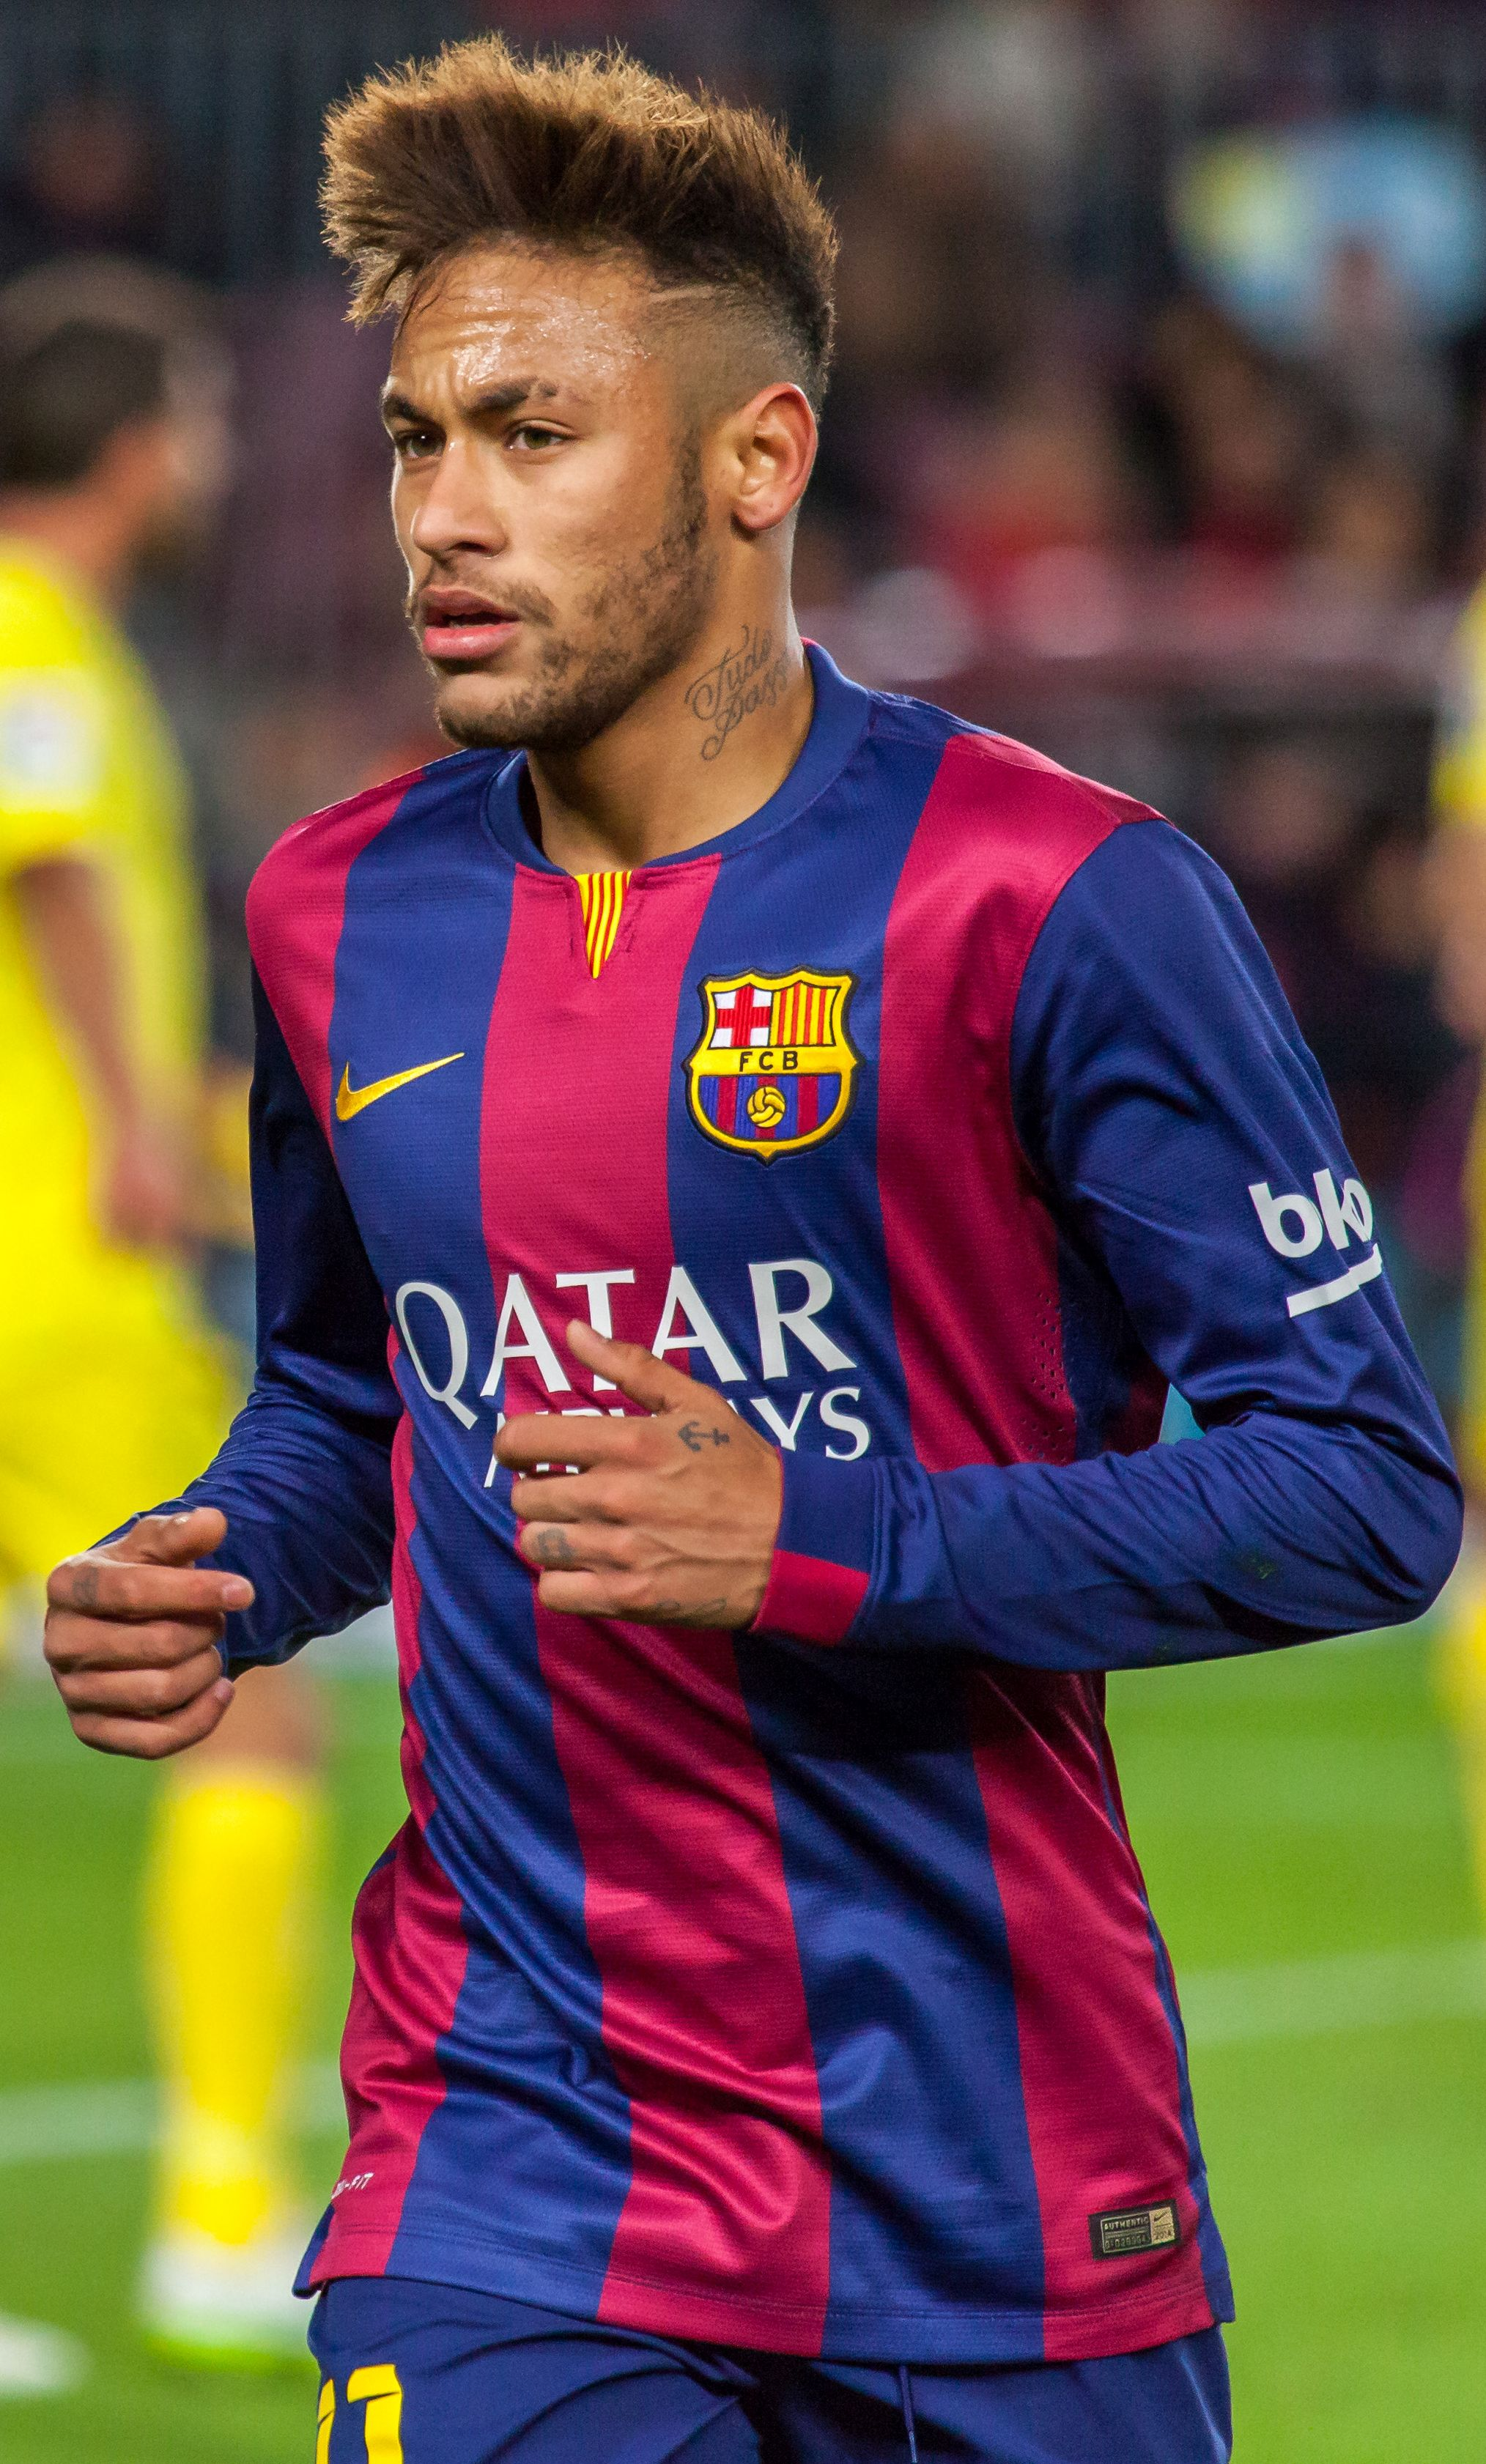 neymar Neymar da silva santos júnior, more commonly known as neymar, is a brazilian professional soccer player who currently plays as a forward the french football club paris saint-germain and the brazilian national football team due to his impressive dribbling techniques and ambidexterity on the field, as well as his celebrity status in brazilian pop culture, neymar is often considered one of the.